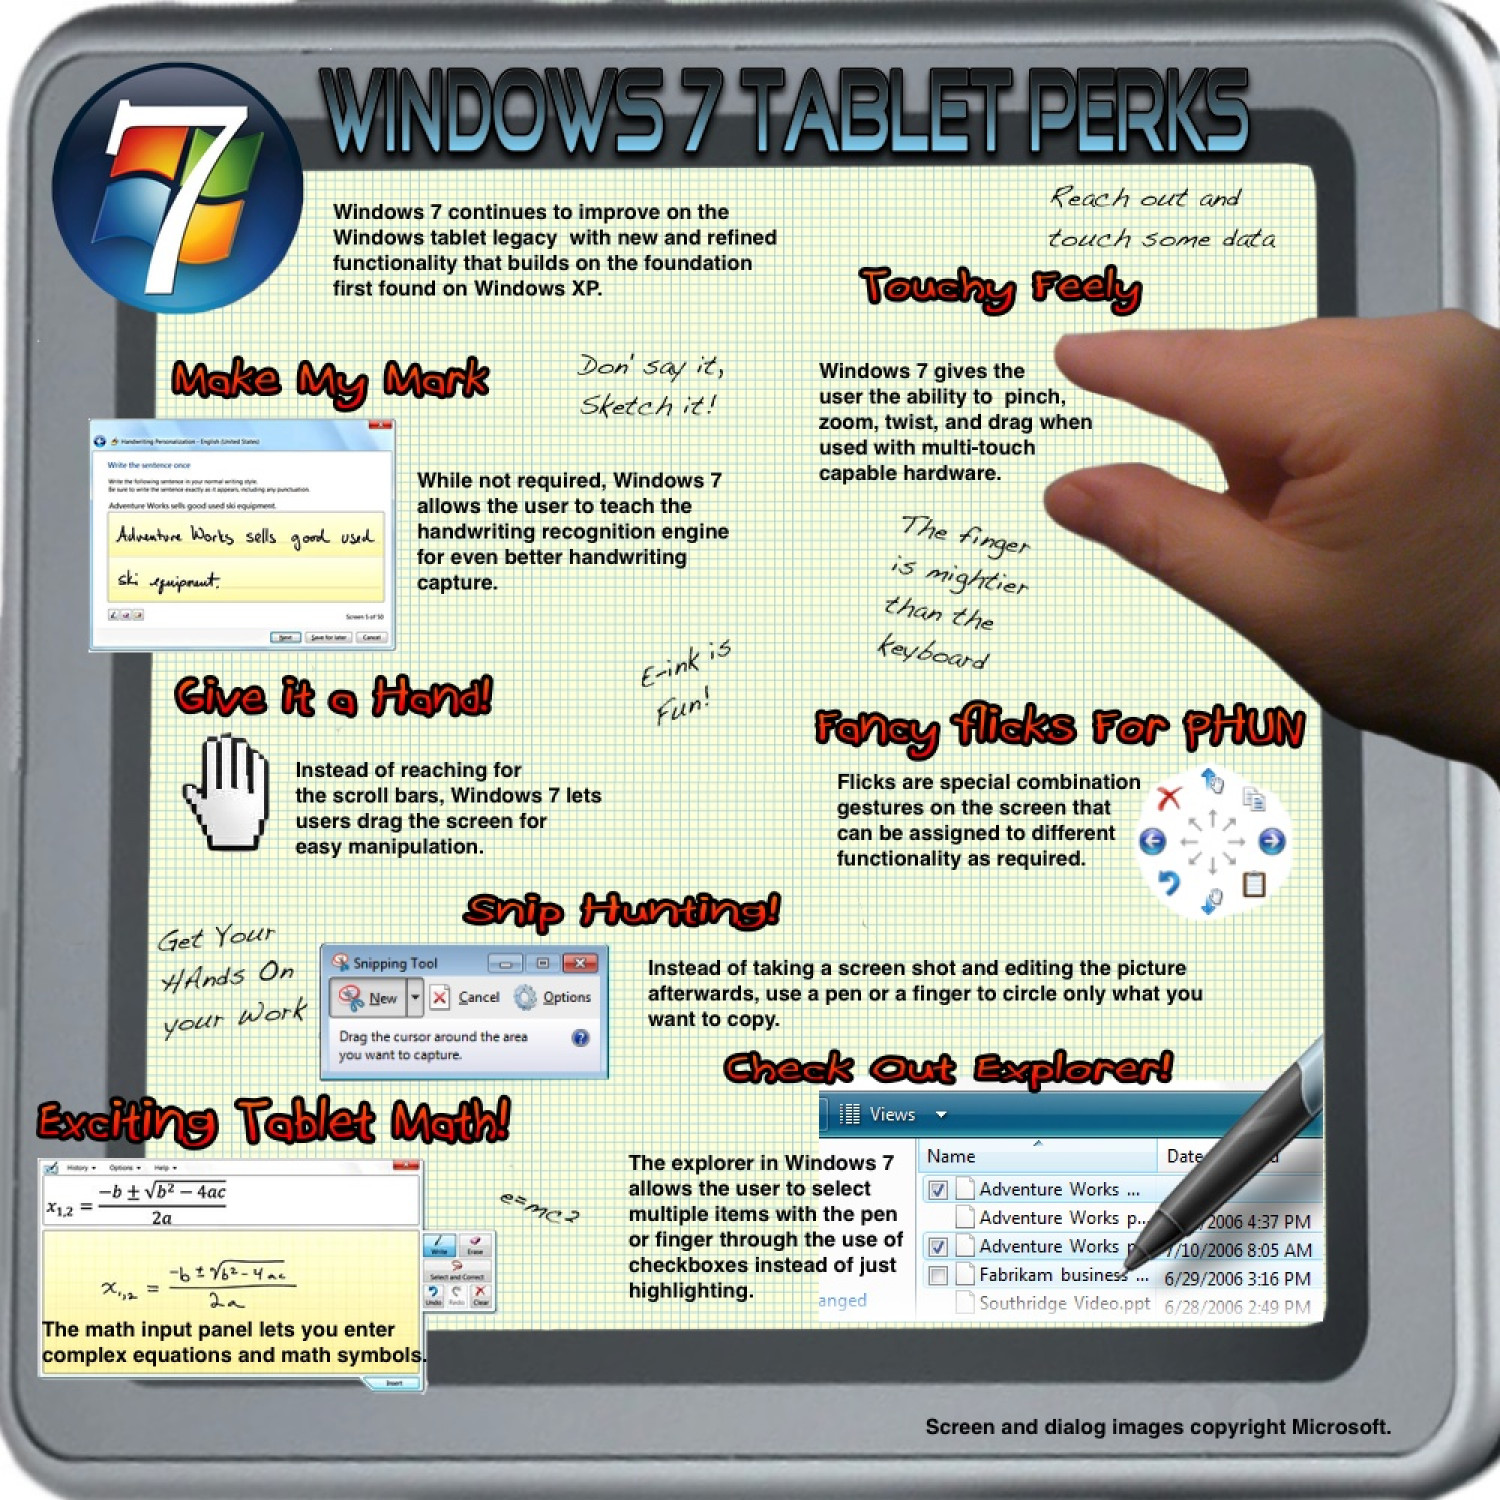 Windows 7 Tablet Perks Infographic